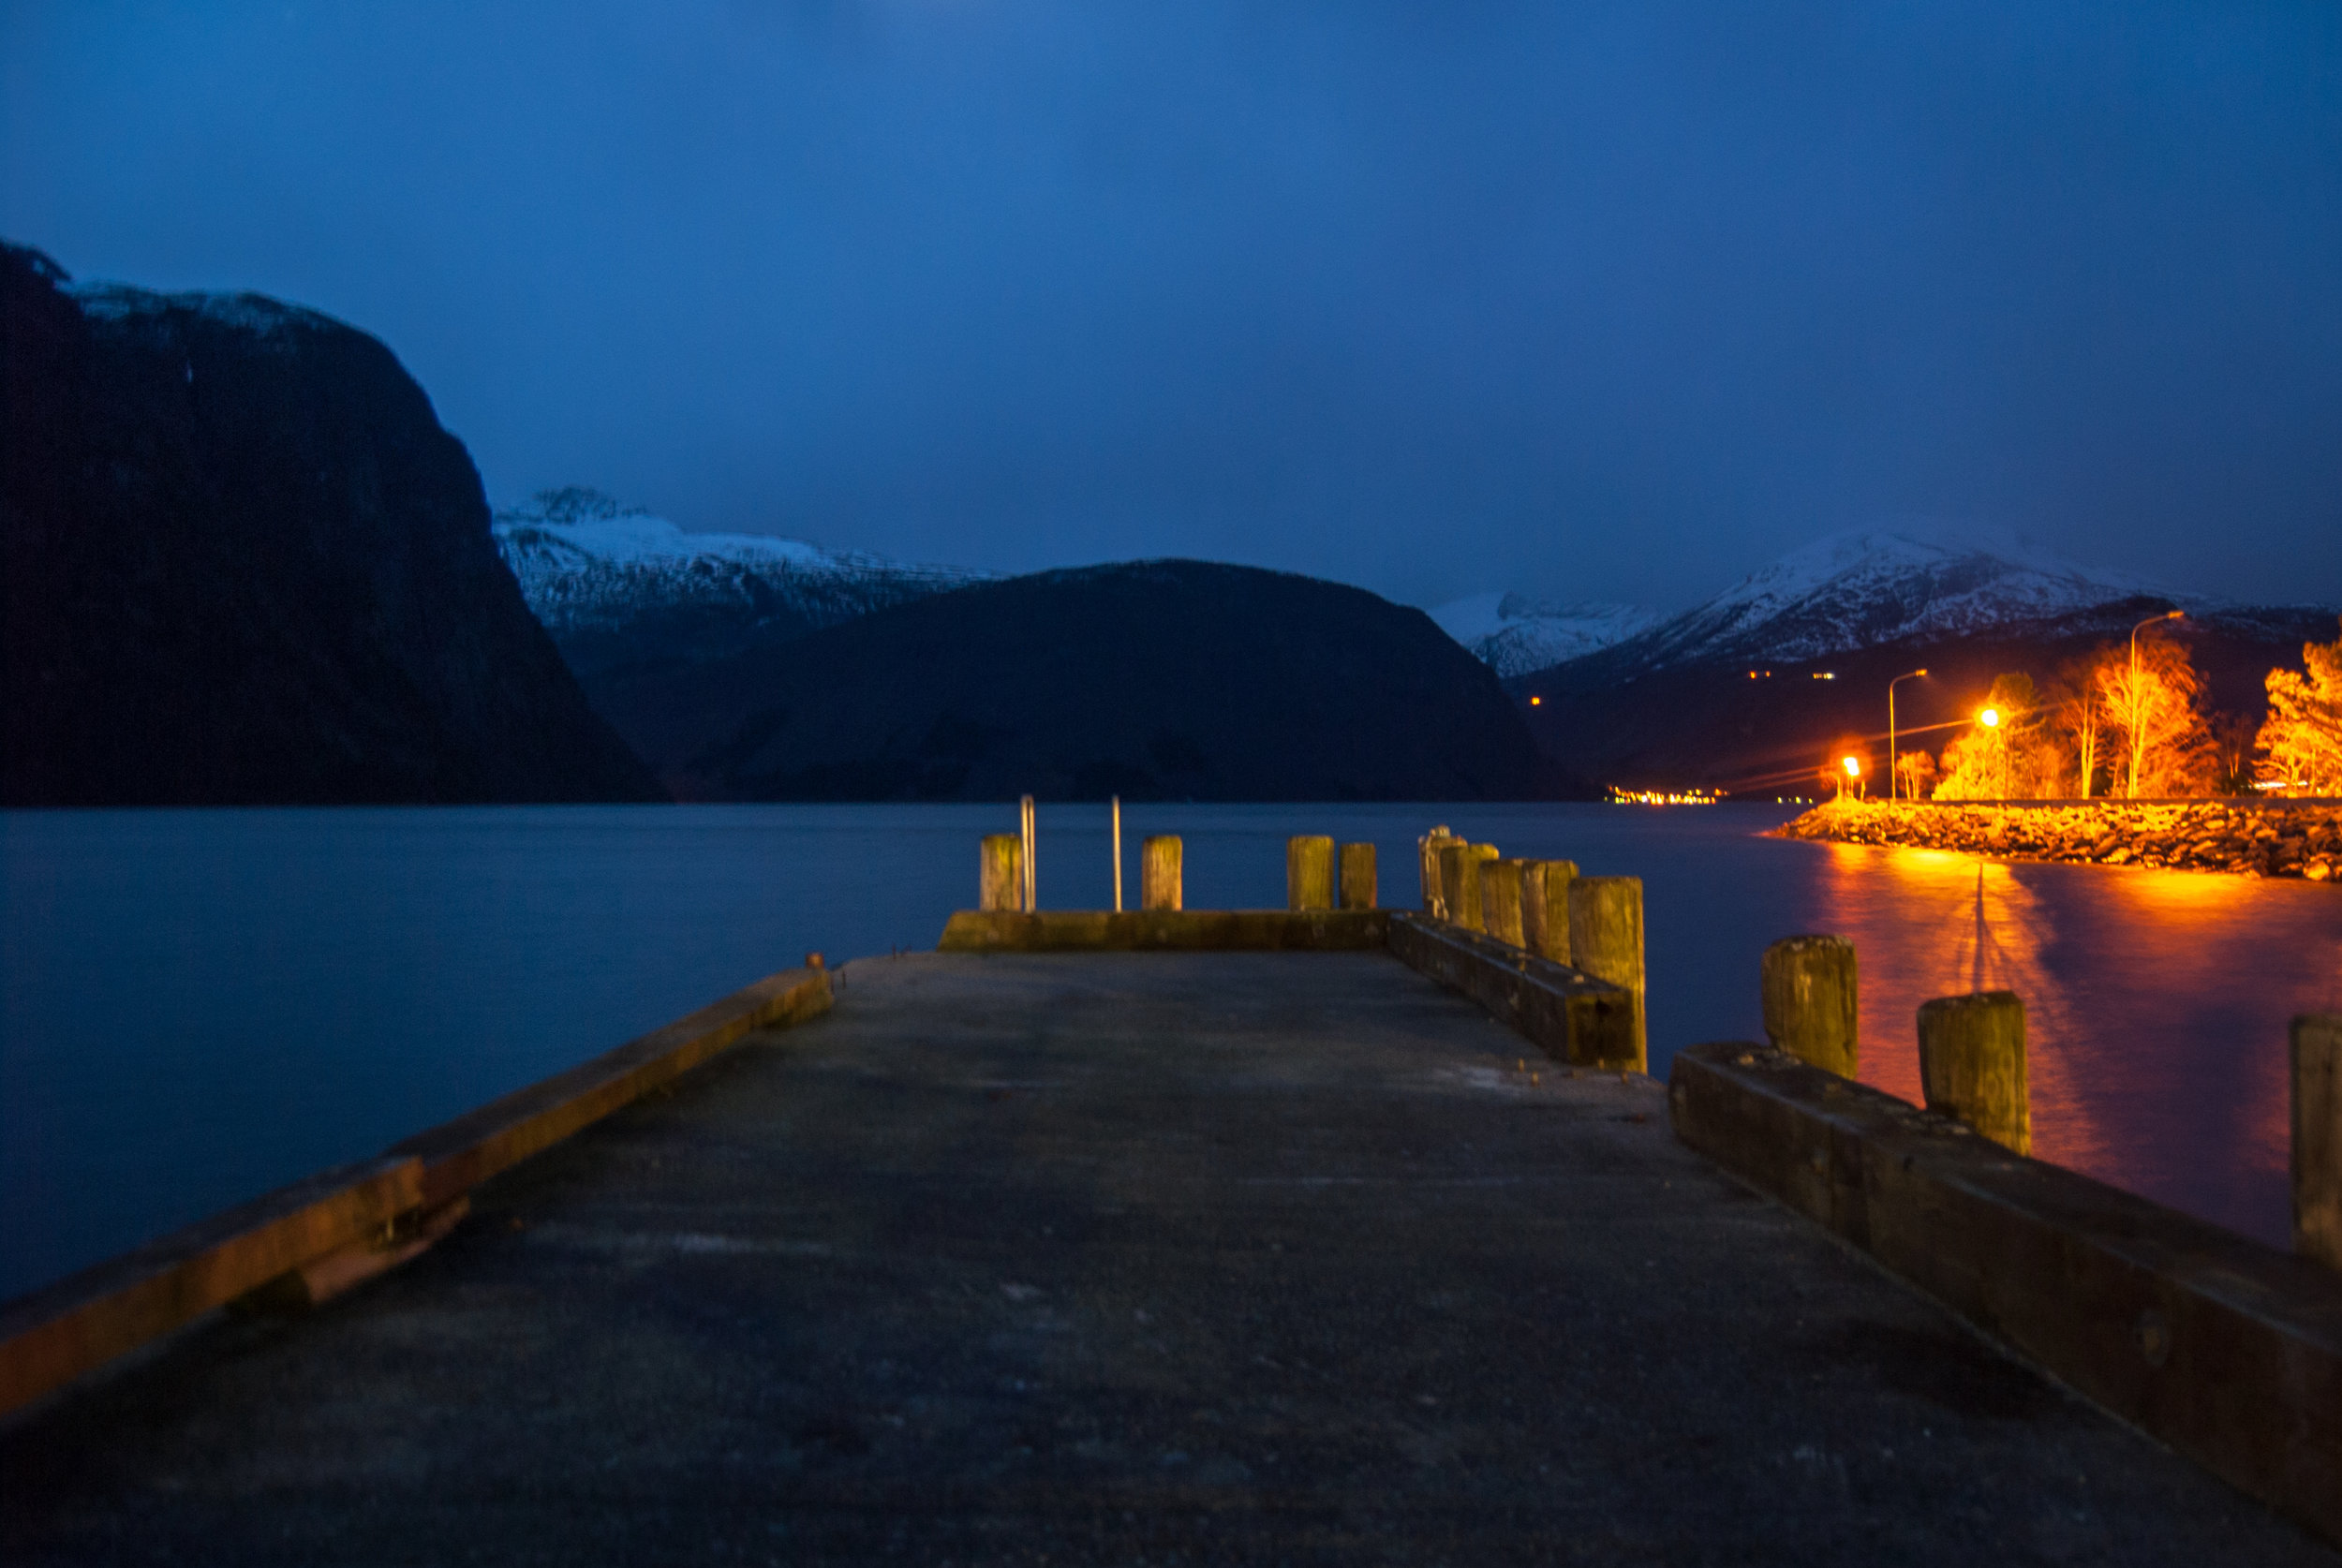 The harbor in Valldal, looking towards the fjord. Nikon D200.